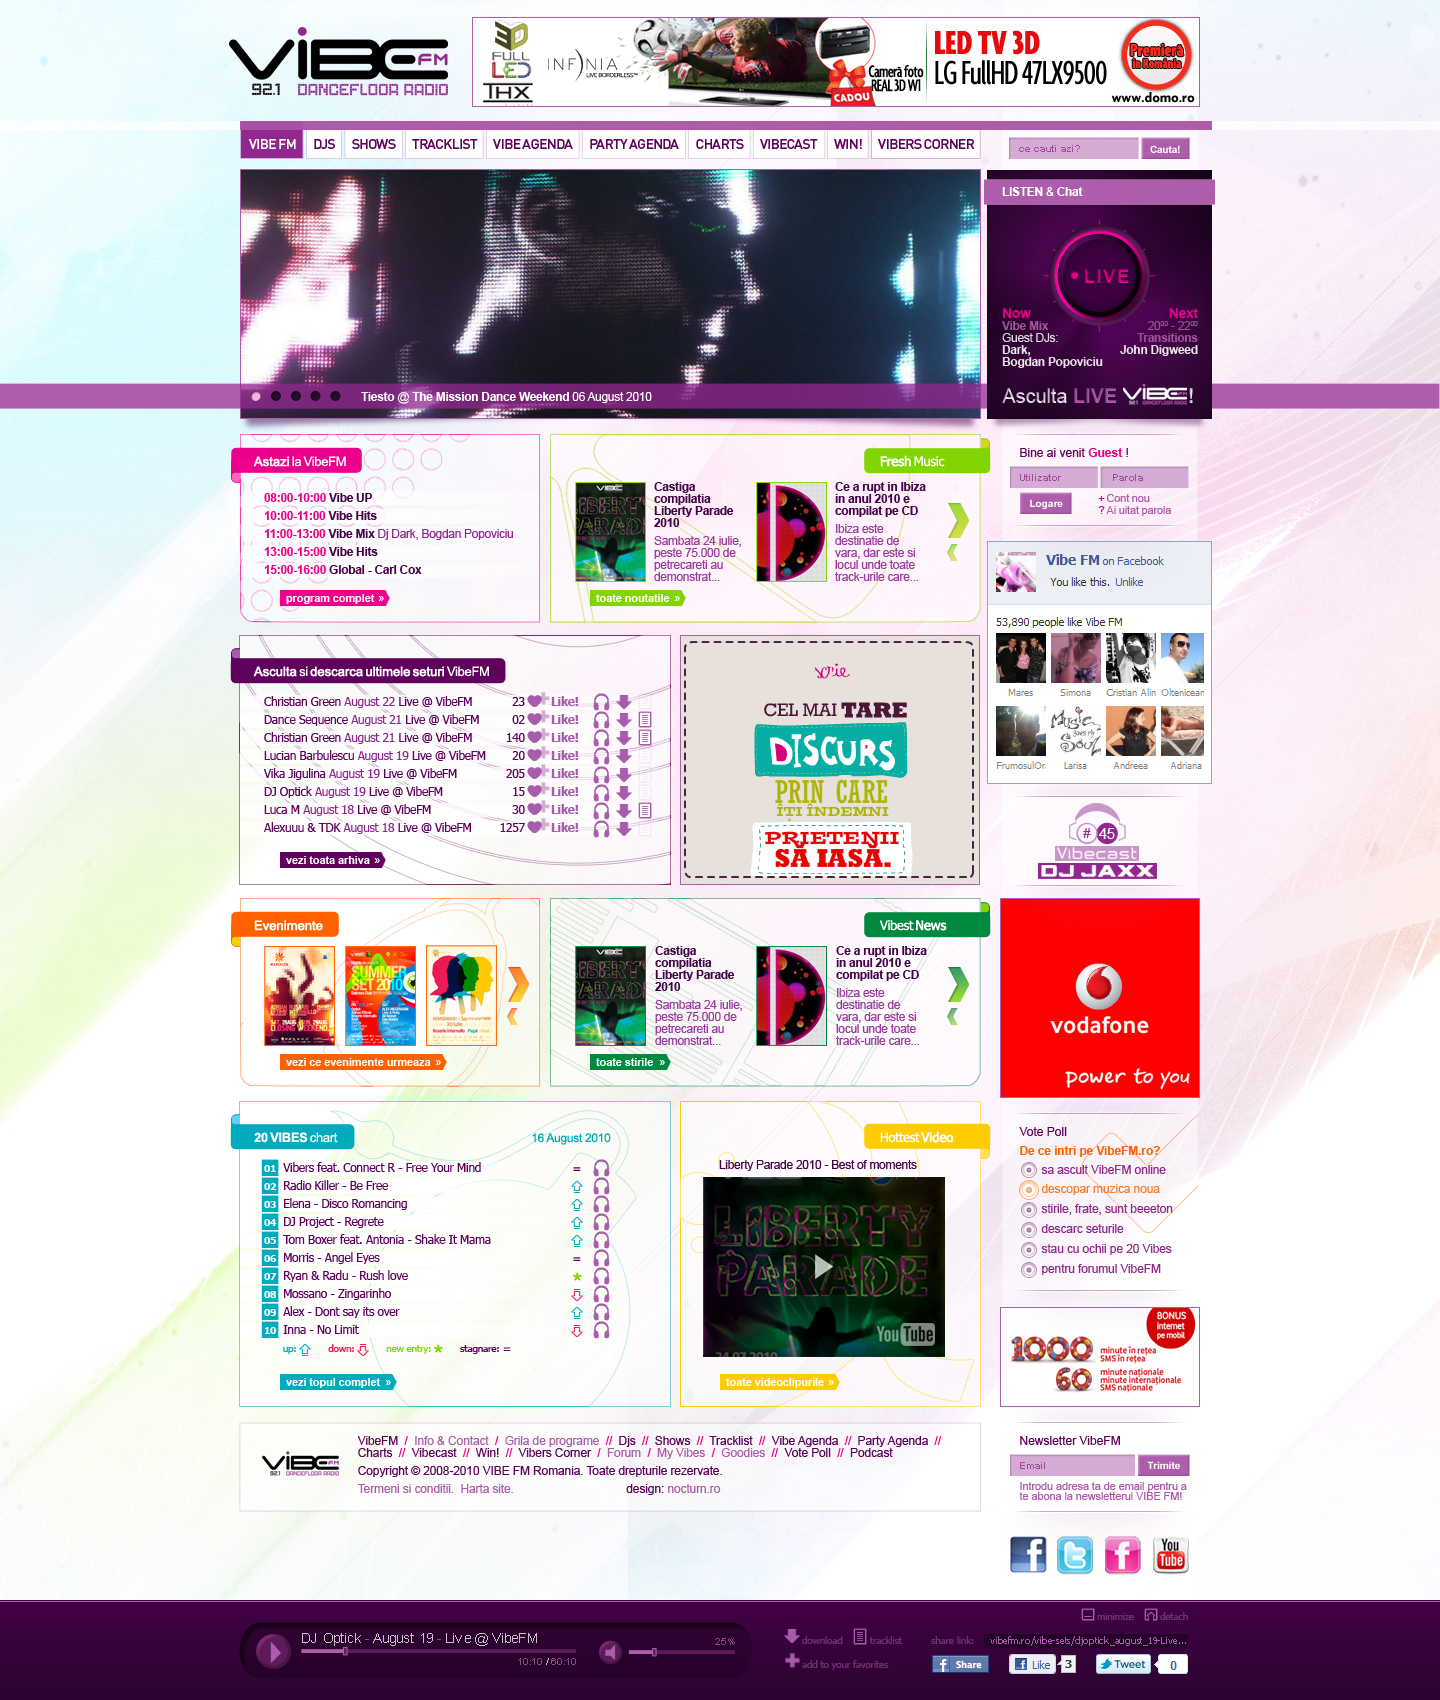 Vibe FM electronic dance music radio station website layout design by Utopia branding agency